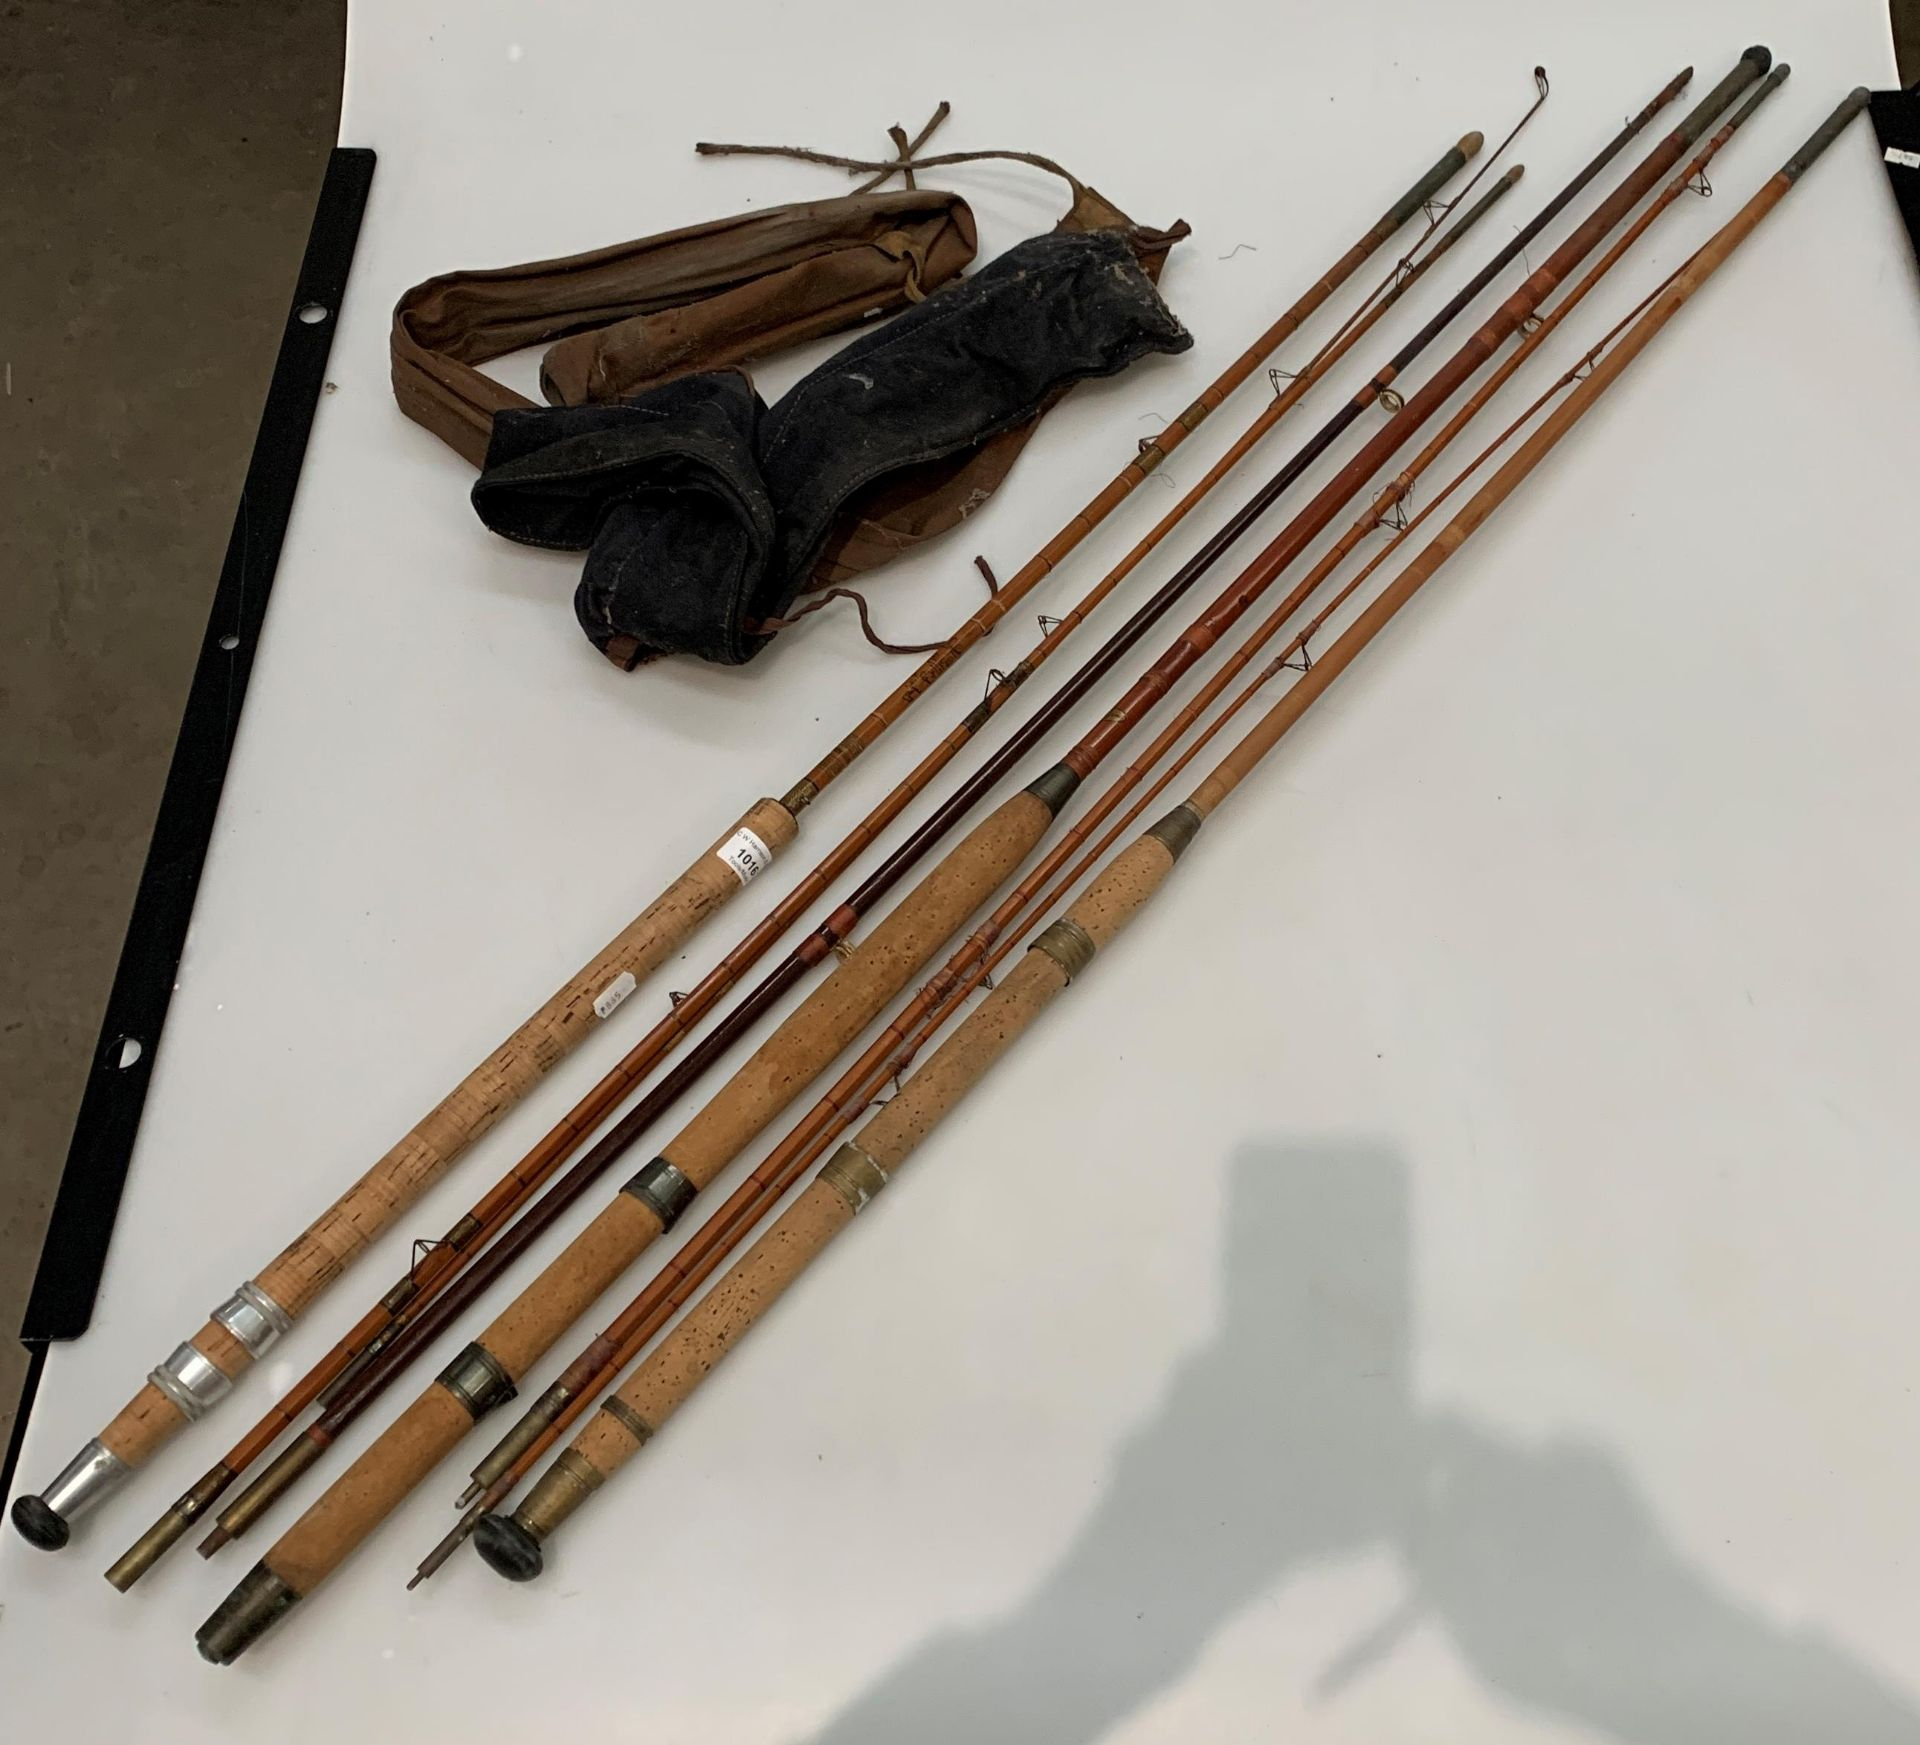 A cane three piece rod with bag, - Image 2 of 2